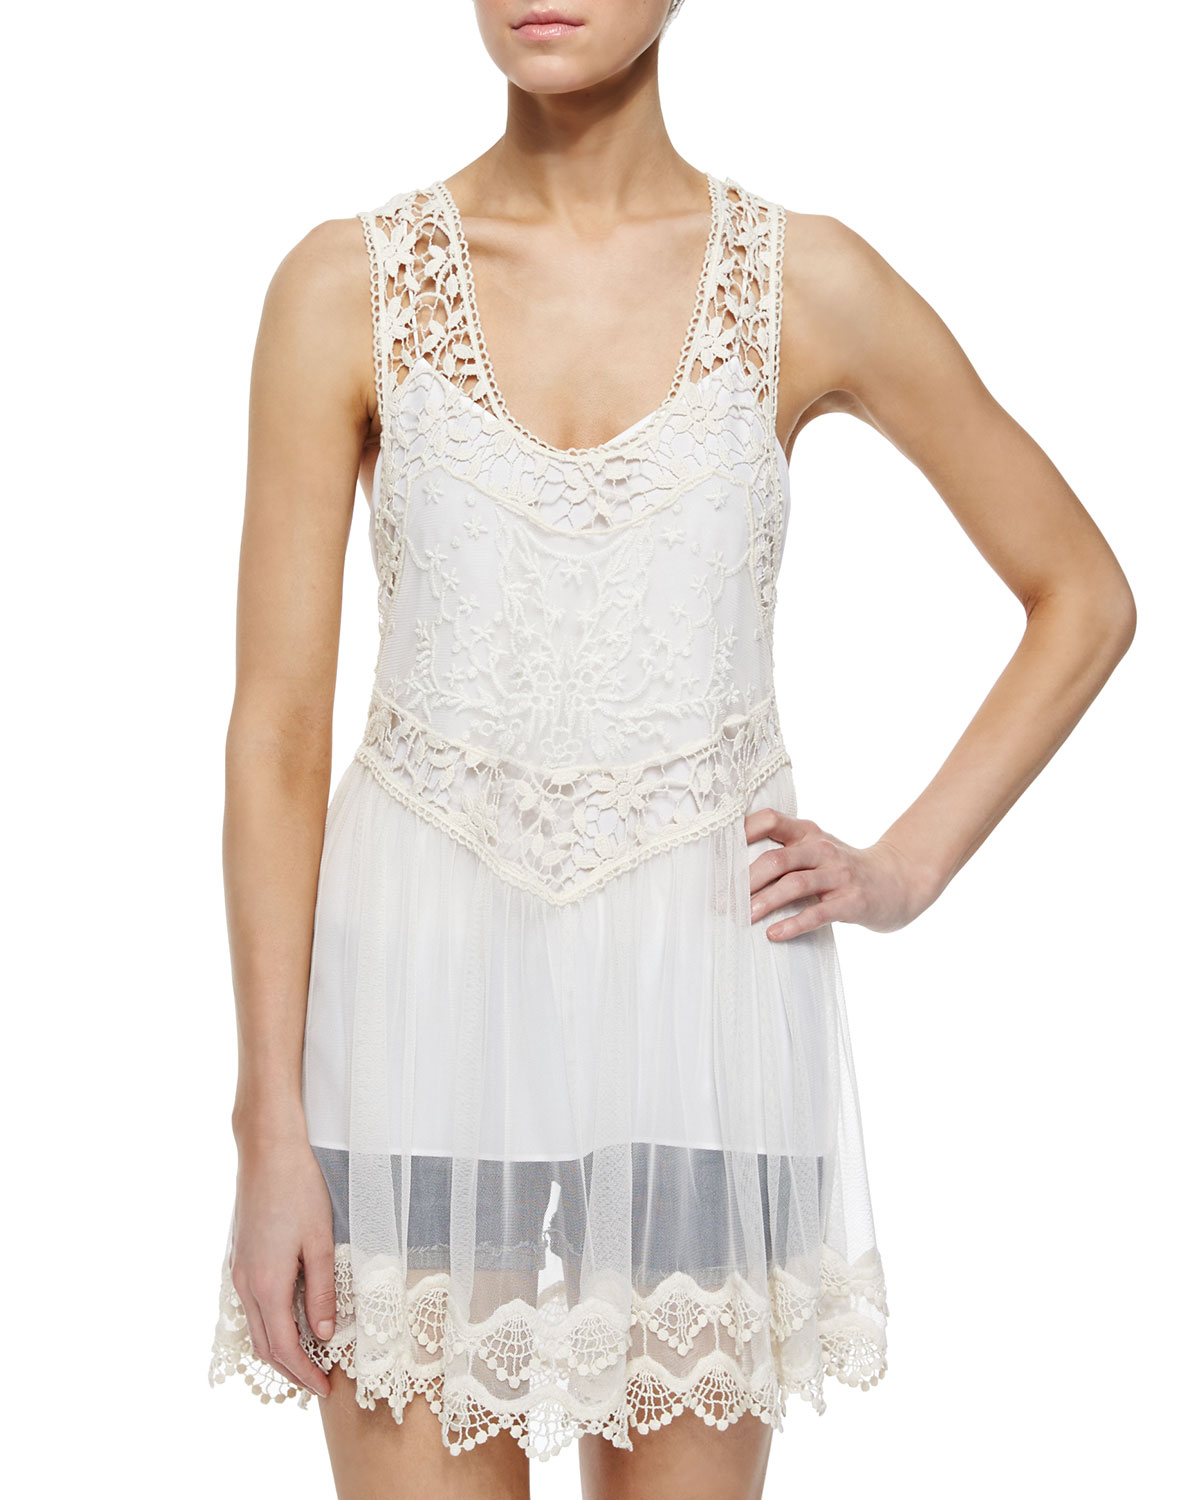 6c4b439bc9b14 Lyst - Alice + Olivia Jayla Sheer-lace Racerback Top in White